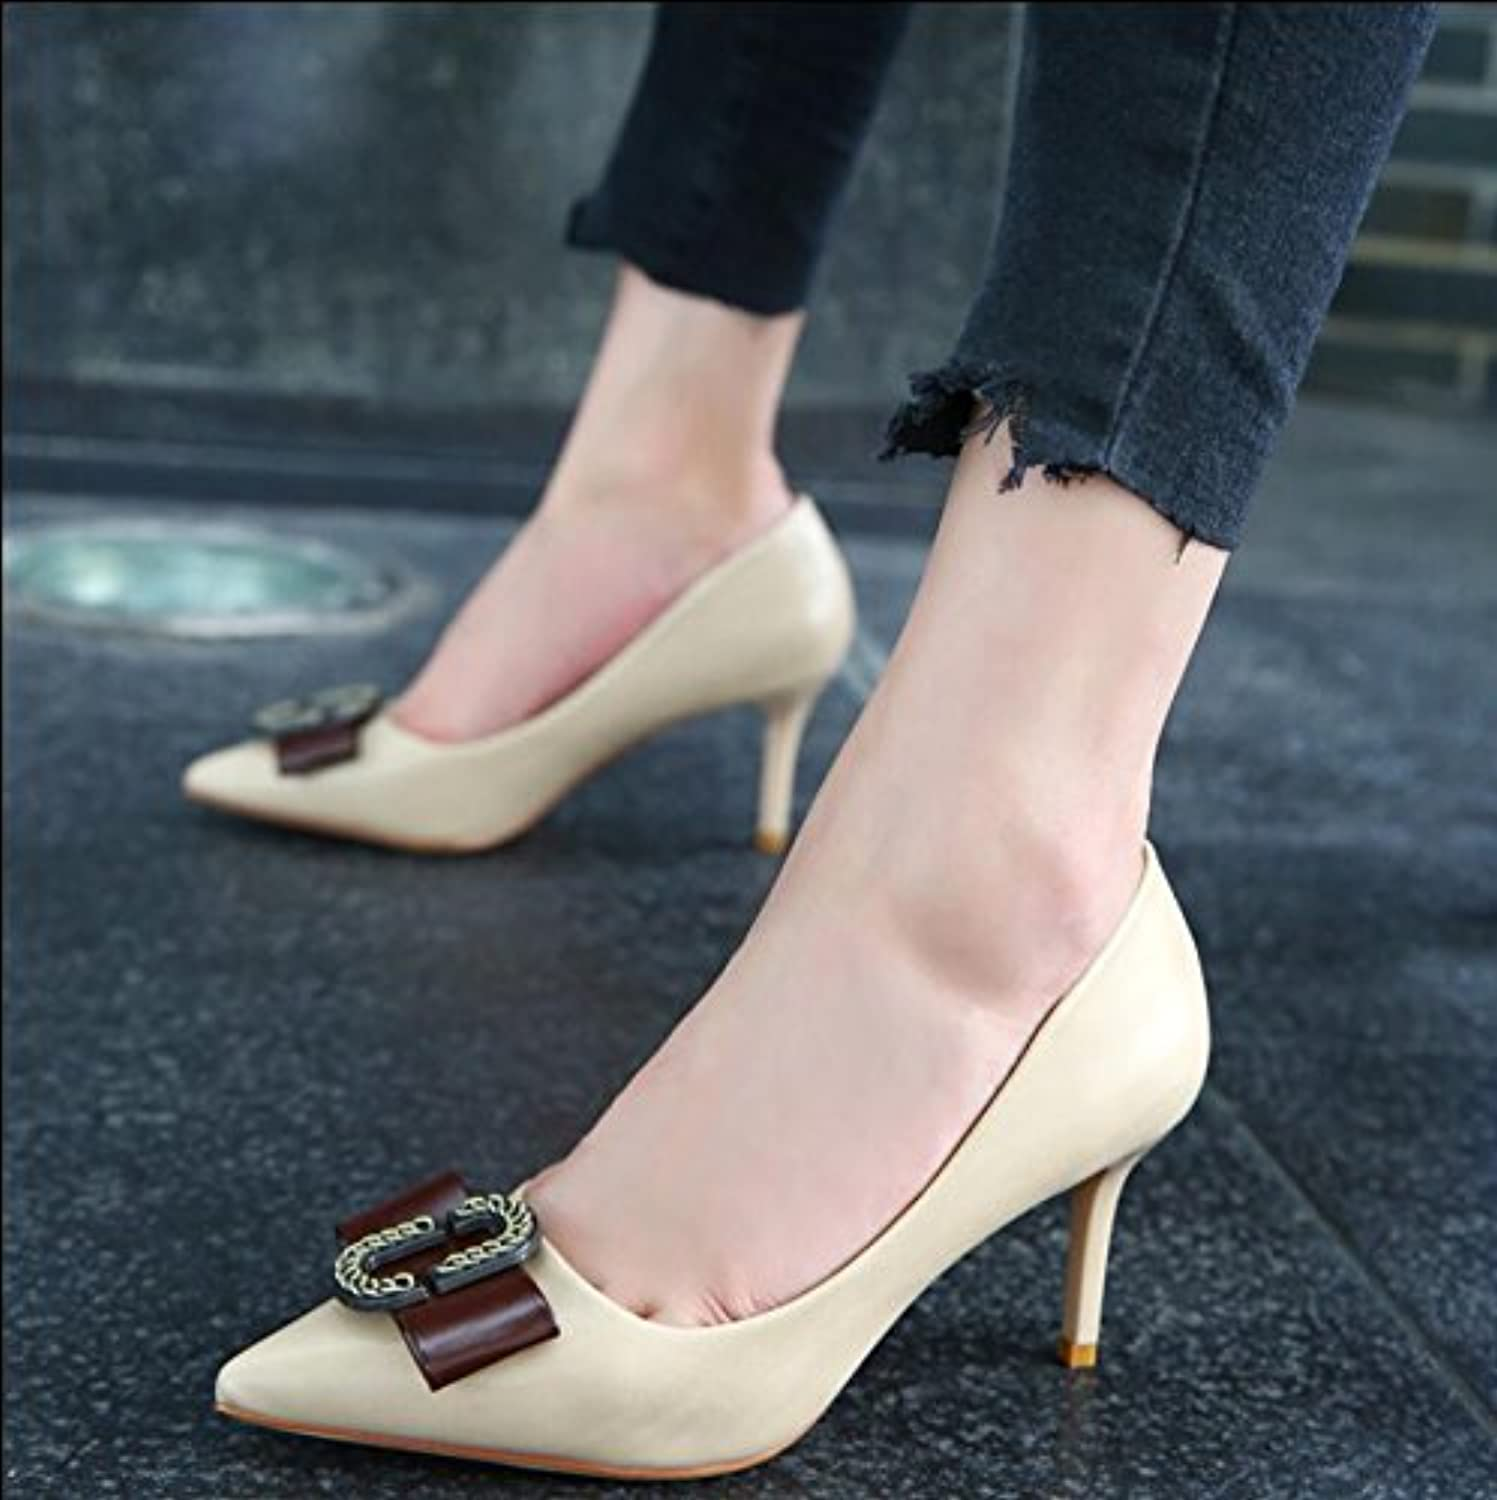 b710af41d84f KHSKX-Beige 7.5Cm Autumn New Tip Tip Tip Of The Bow Tie Shallow Mouth Single  Shoes With High Heels Fine Sweet Princess... B0789D32MT Parent 6d5d68